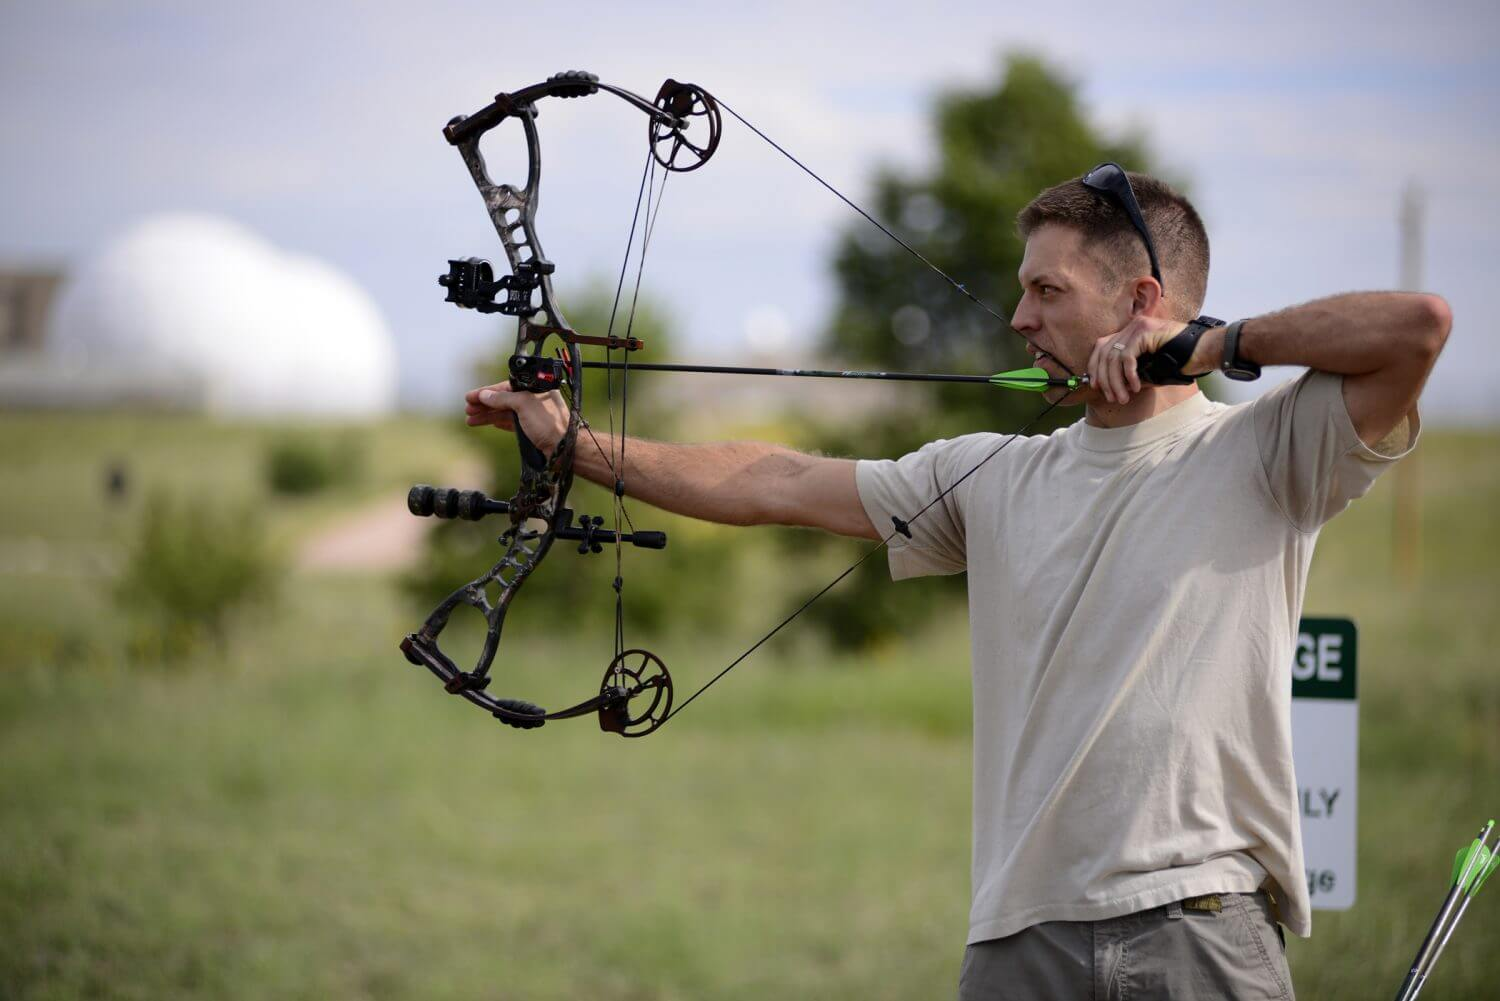 Compound bow accessories